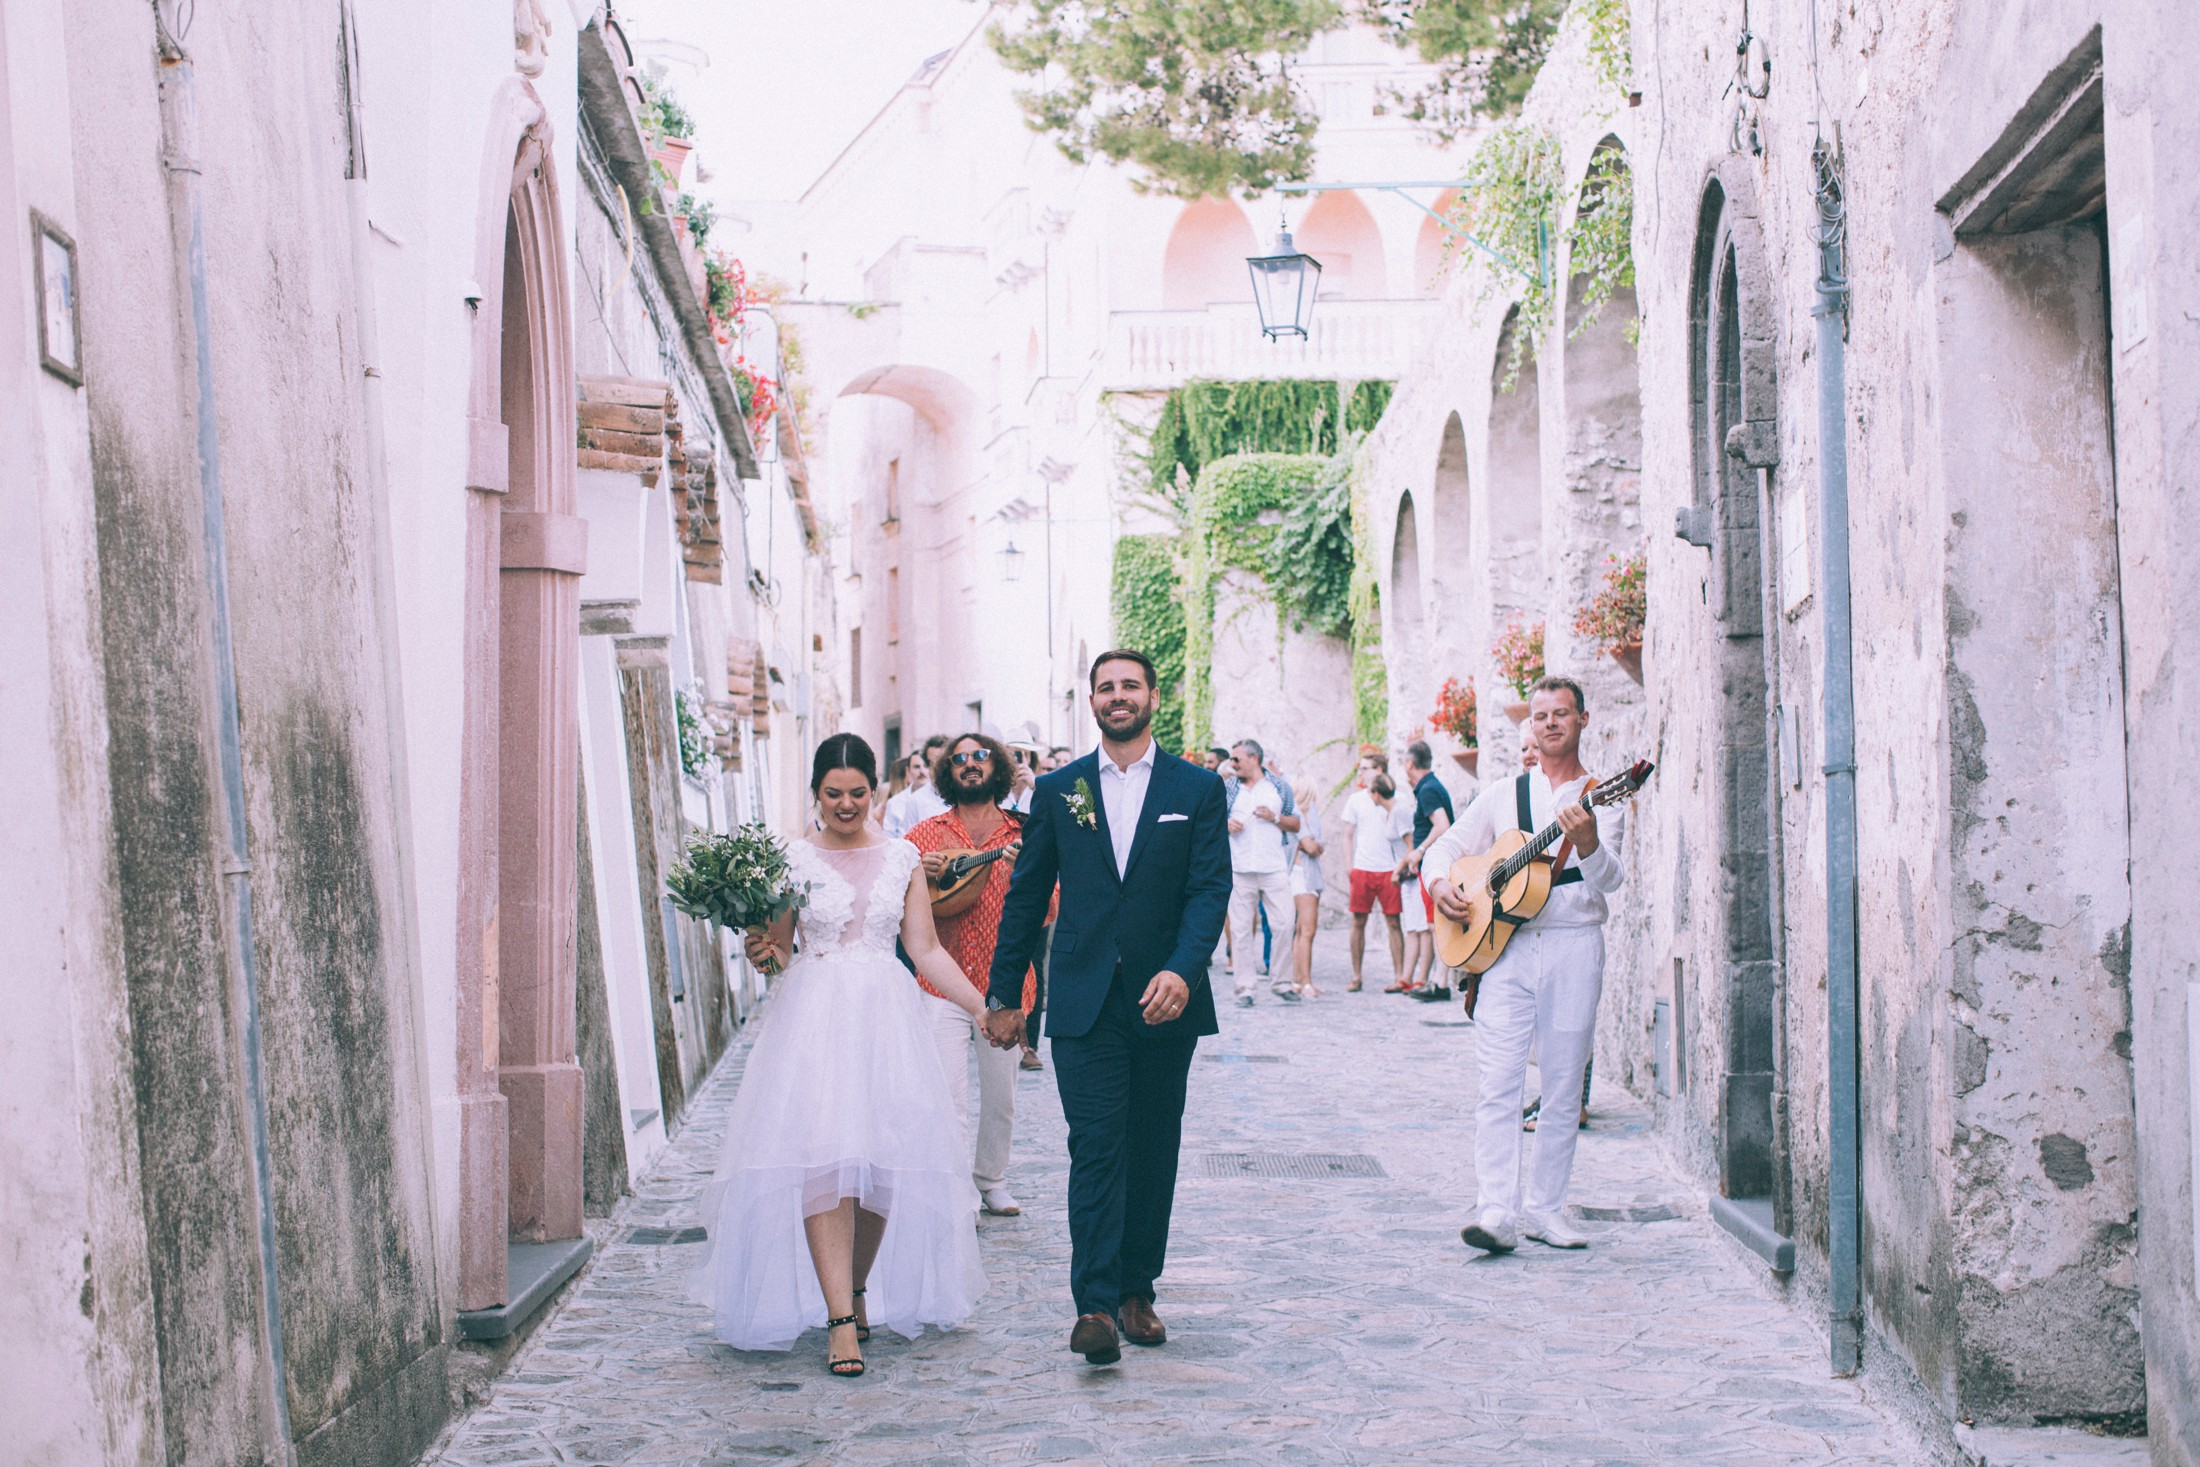 rustic wedding in ravello the bride and the groom walking together in ravello